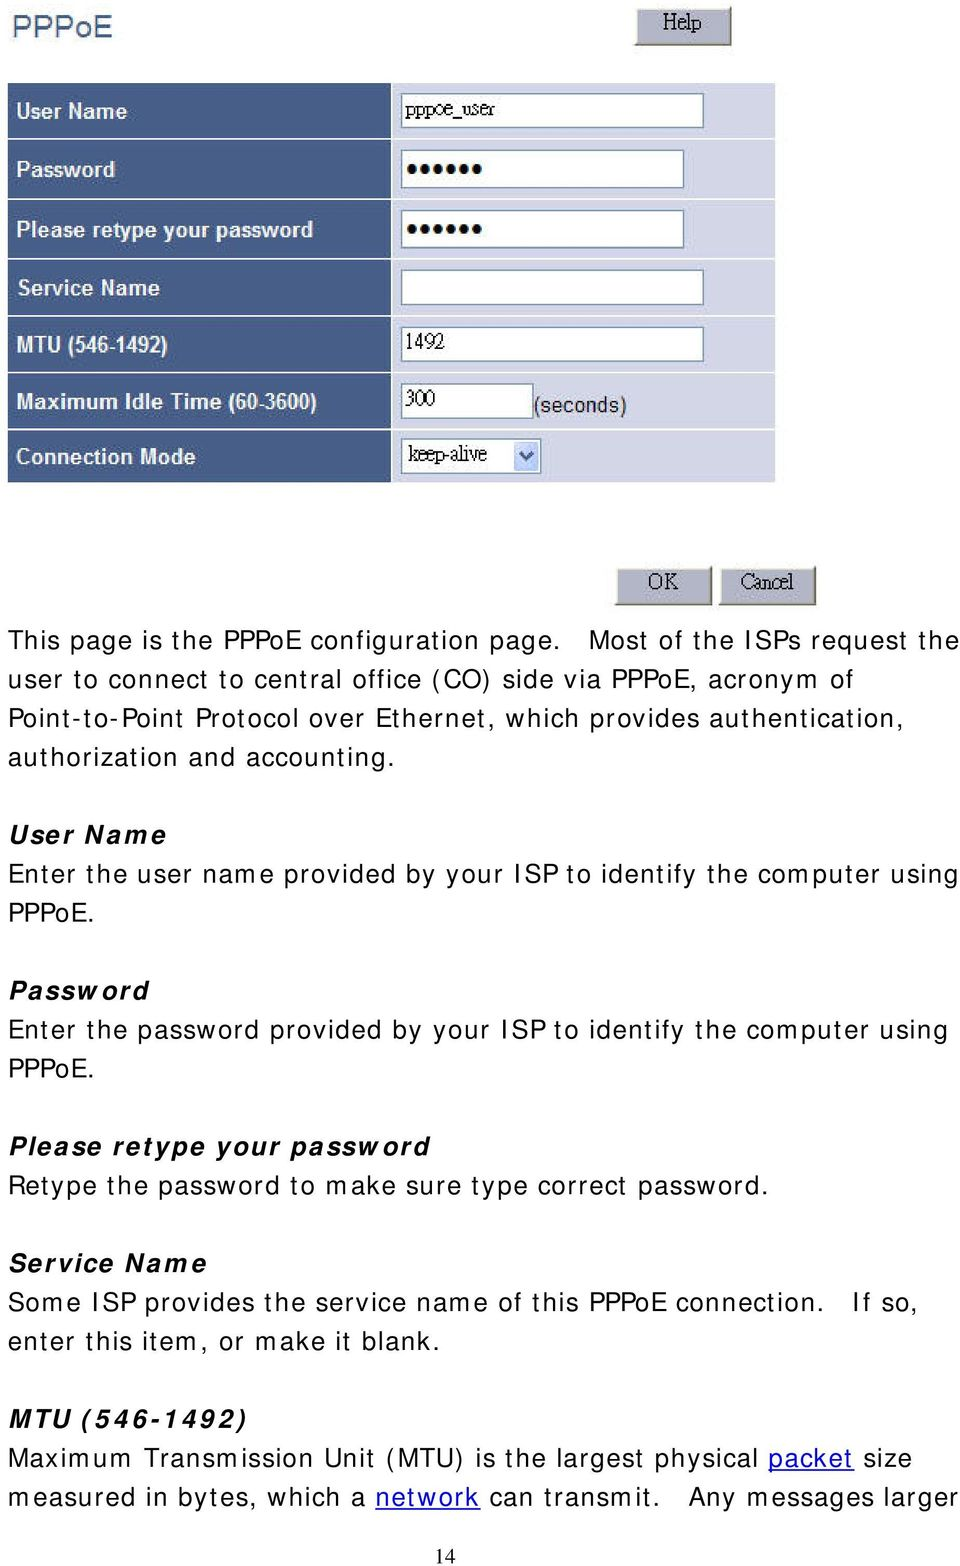 accounting. User Name Enter the user name provided by your ISP to identify the computer using PPPoE. Password Enter the password provided by your ISP to identify the computer using PPPoE.